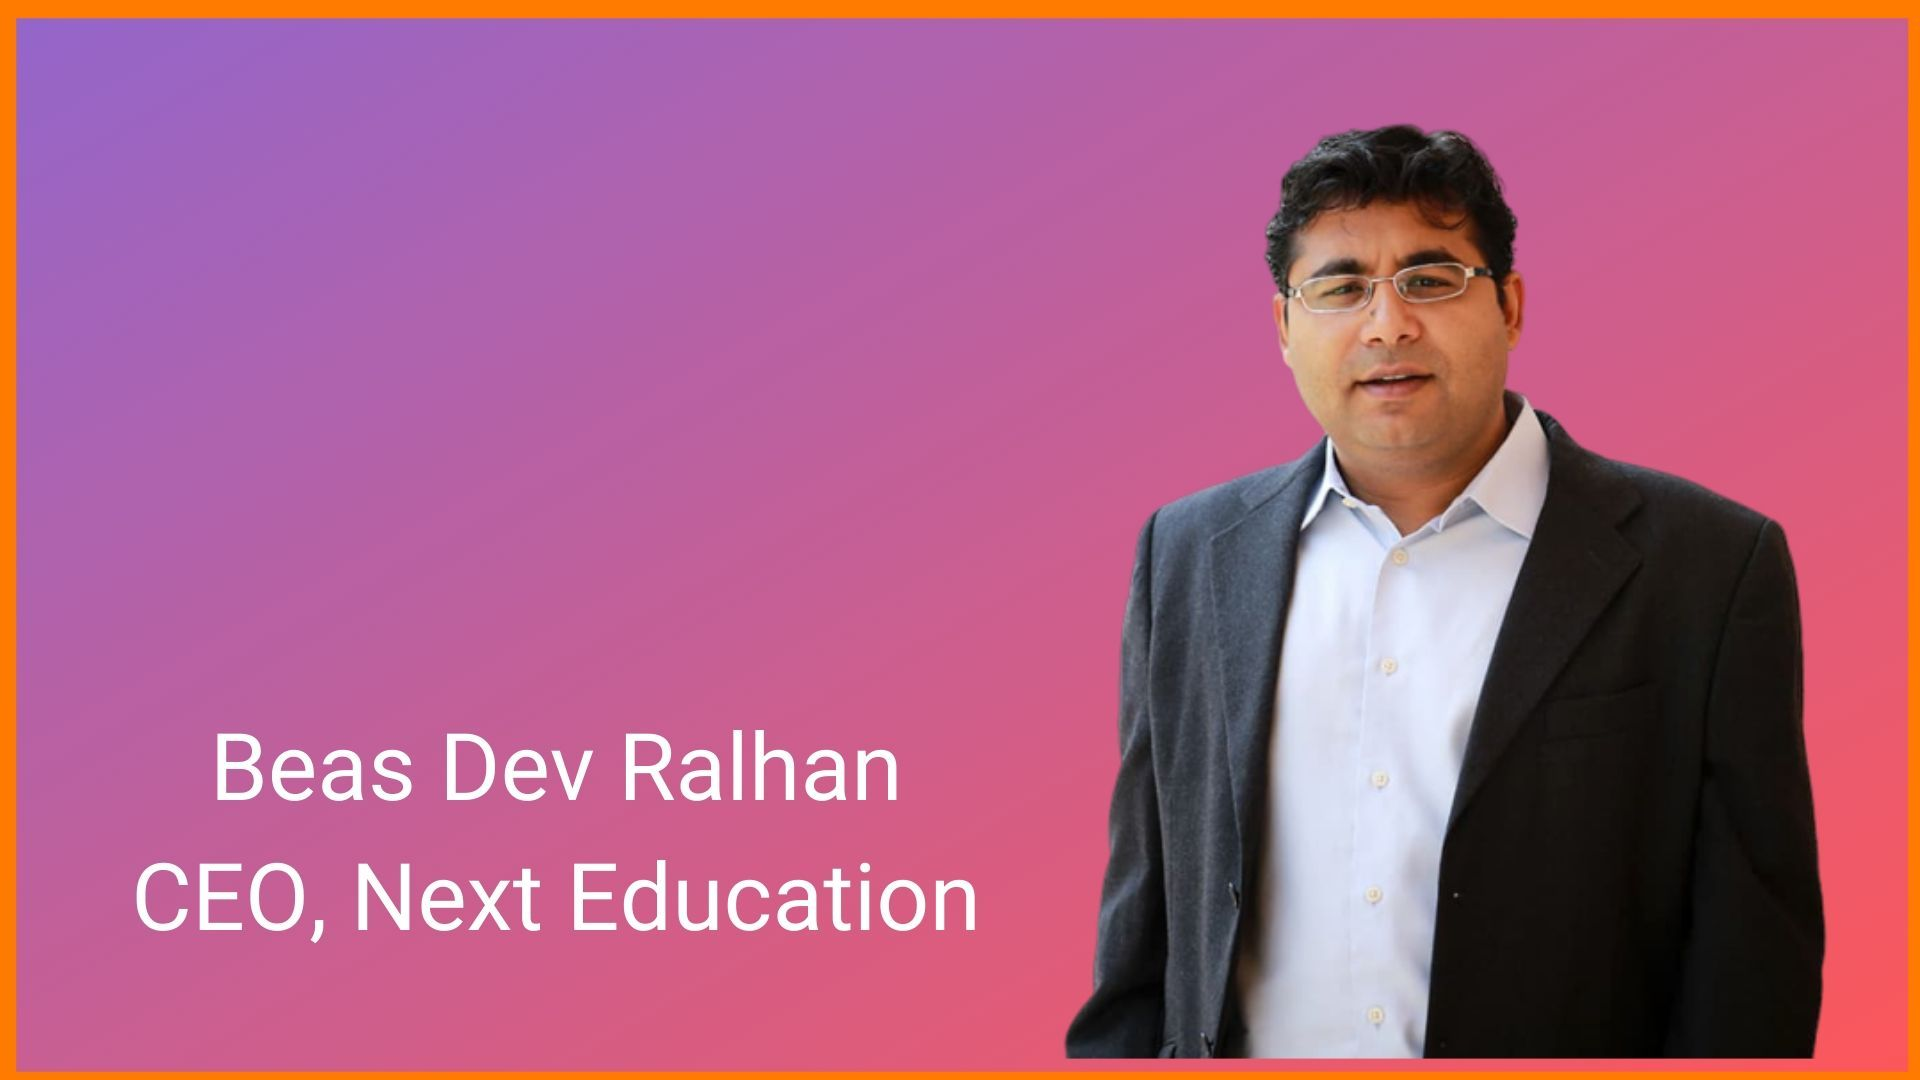 Beas Dev Ralhan, Chief Executive Officer (CEO) of Next Education.